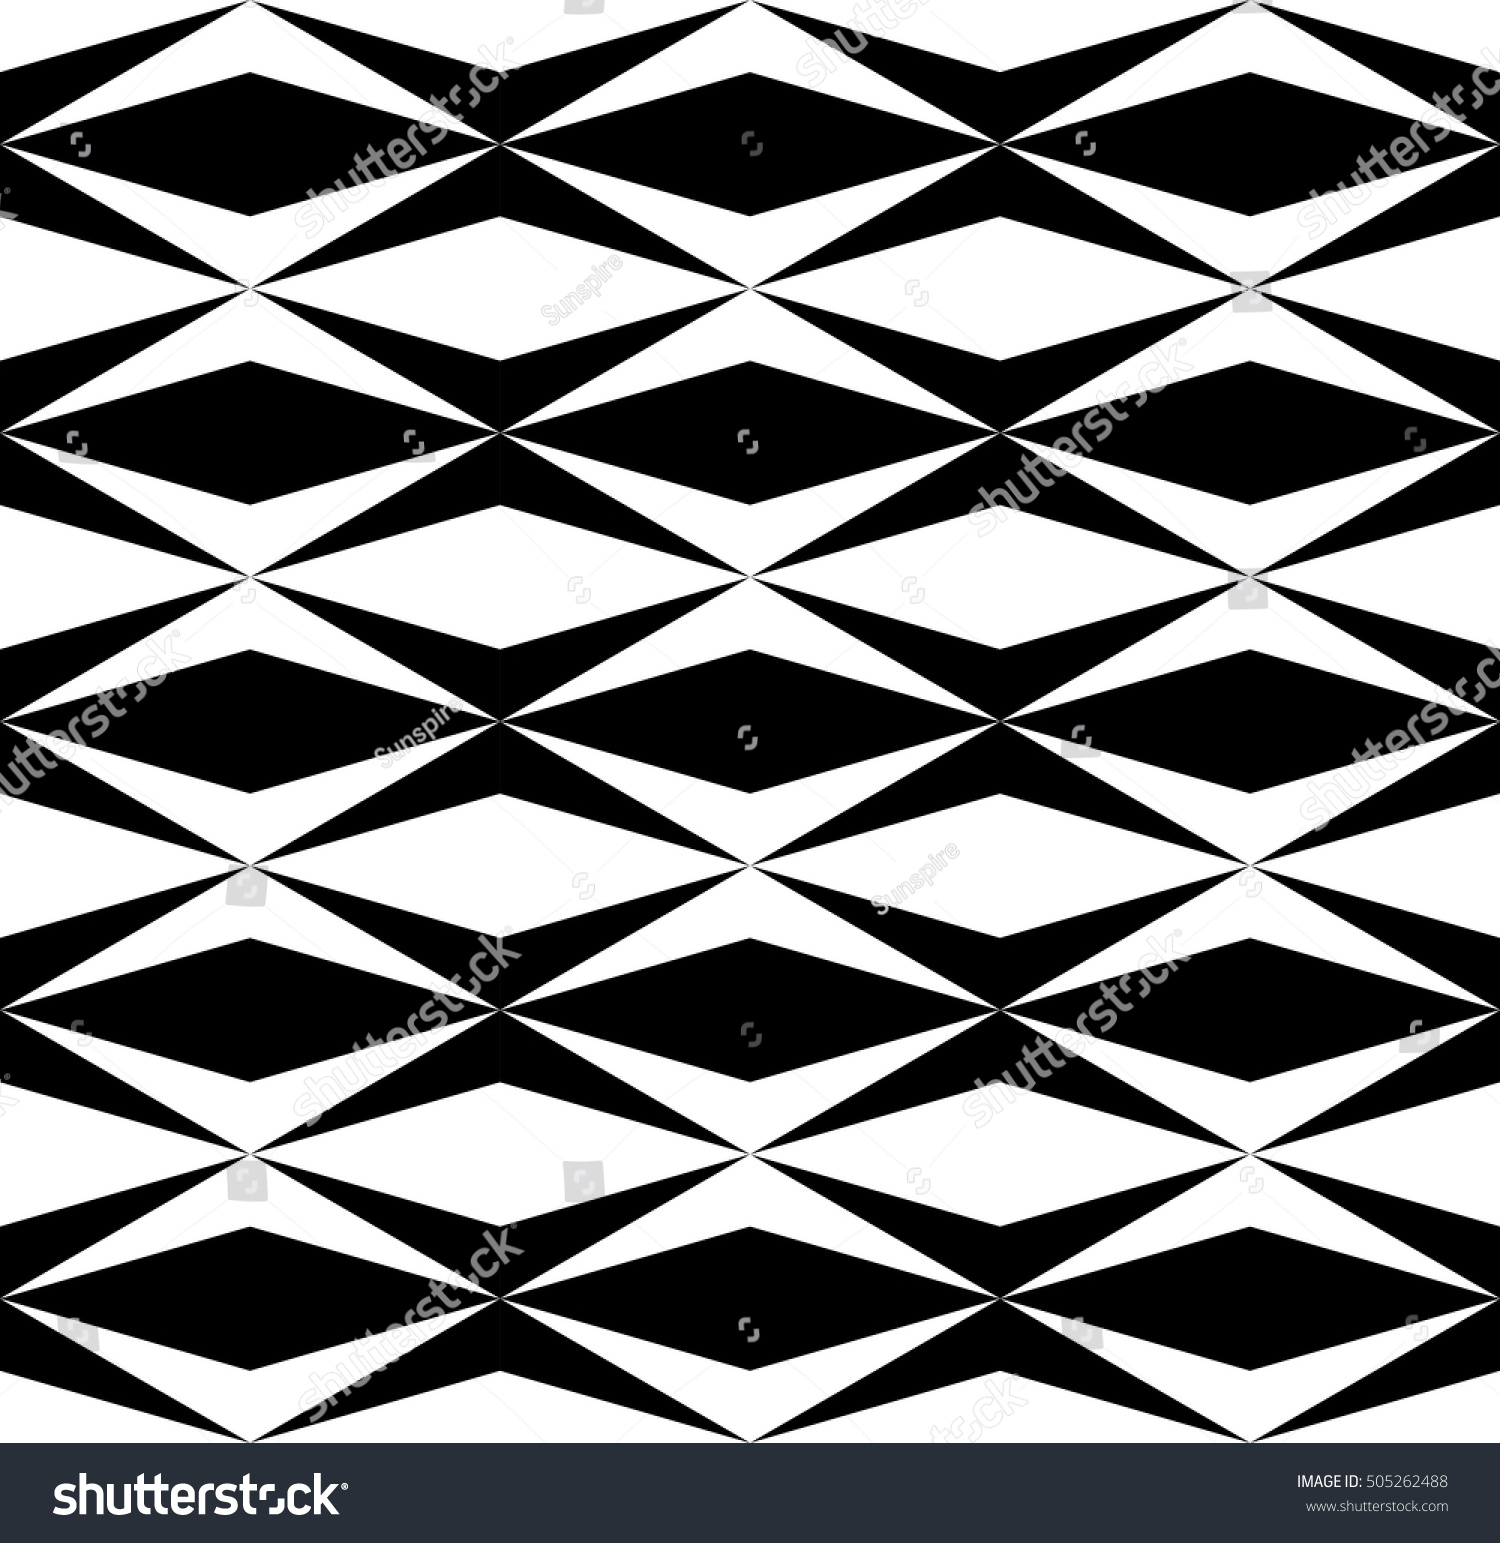 Black bed sheets pattern - Vector Modern Abstract Geometry Tile Pattern Black And White Seamless Geometric Background Subtle Pillow